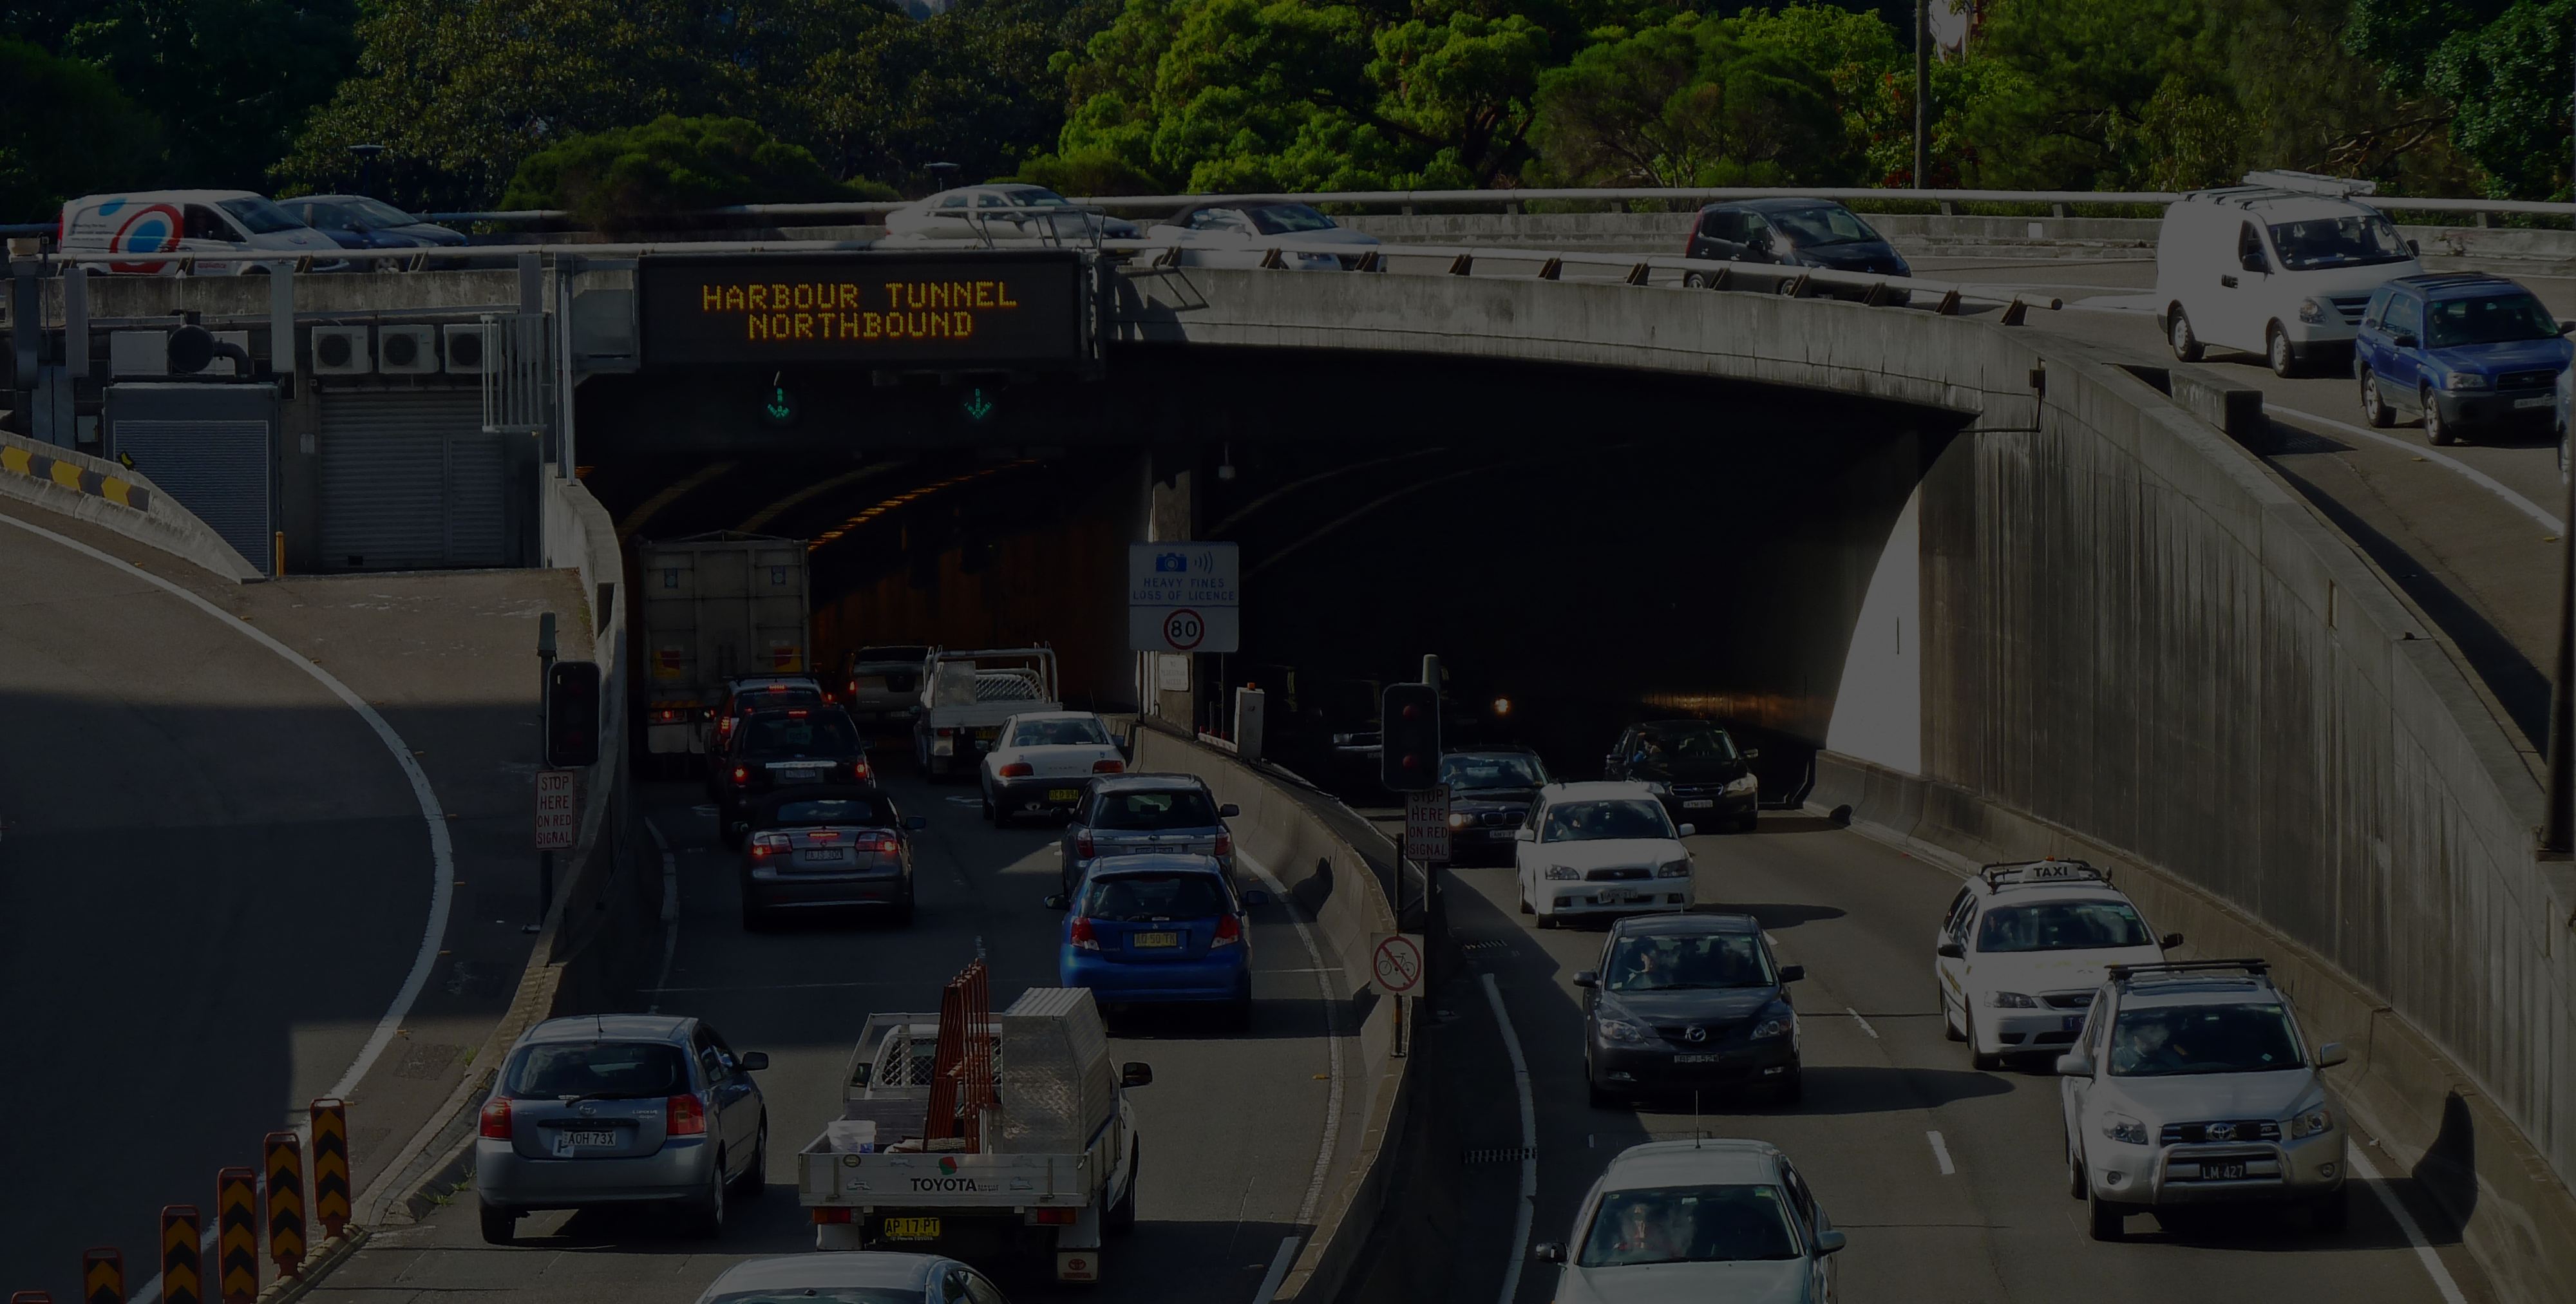 Cahill_Expressway_and_Sydney_Harbour_Tunnel_from_Conservatorium_Road_Sydney_New_South_Wales_2011-03-23_041